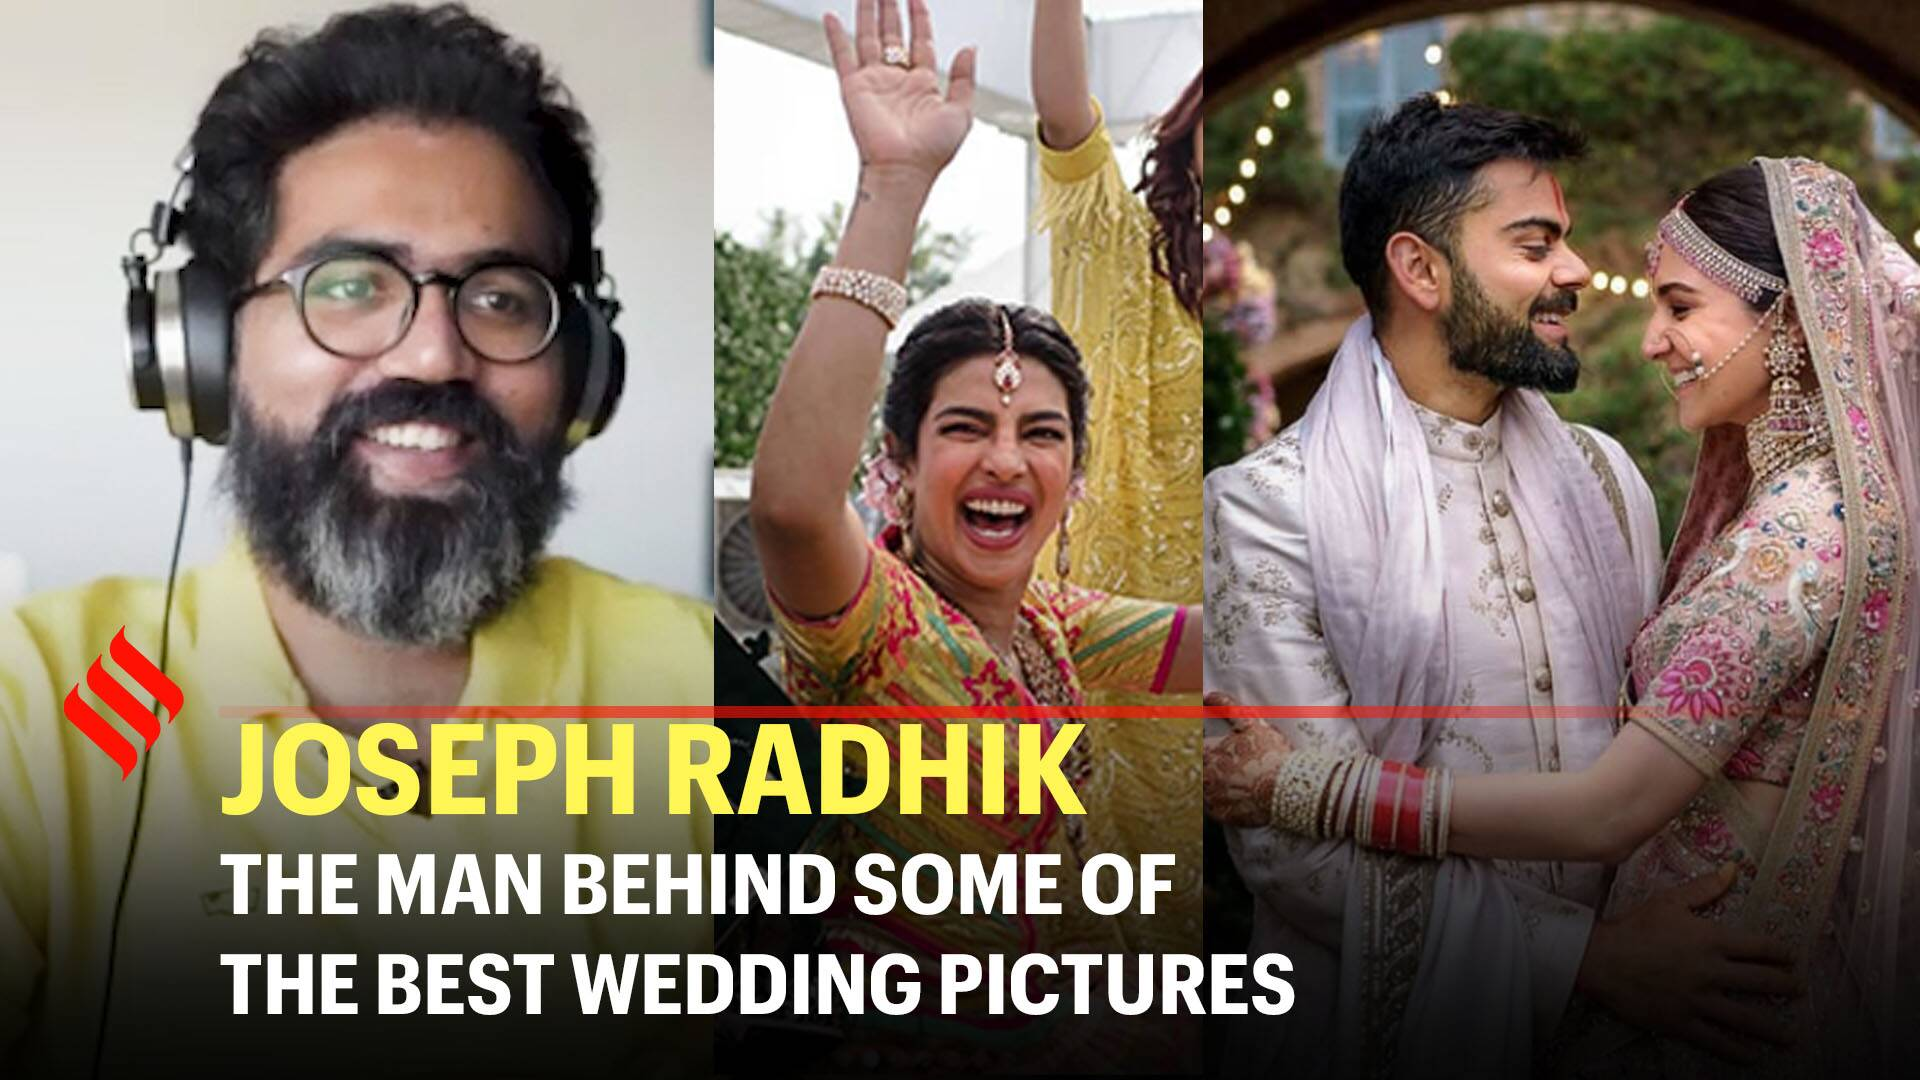 Big or small weddings, we capture the essence of love: Celebrity wedding photographer Joseph Radhik